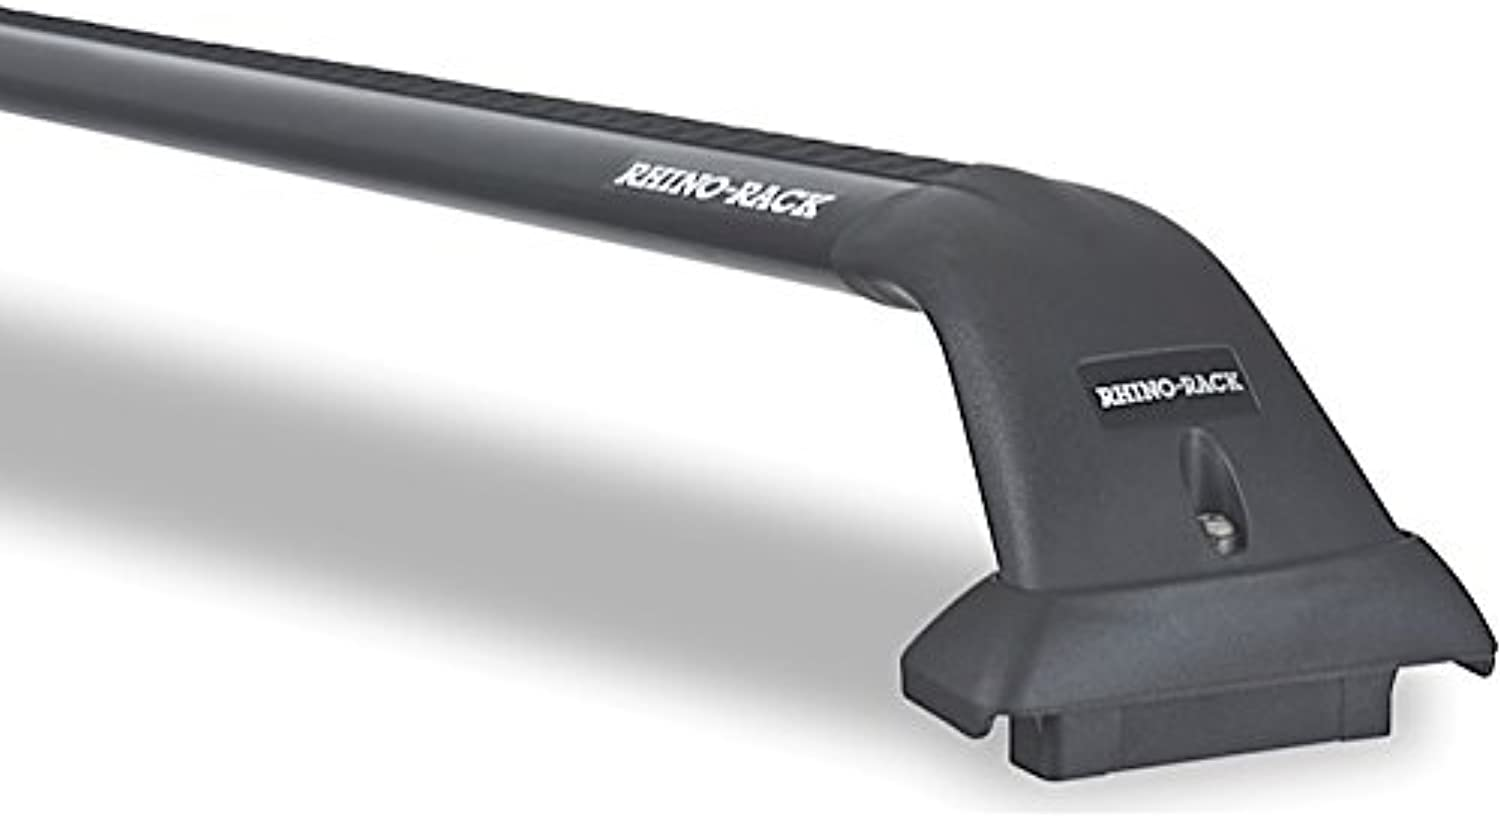 Rhino Rack Sportz Bars and Leg Kit for Jeep Commander 4, Black